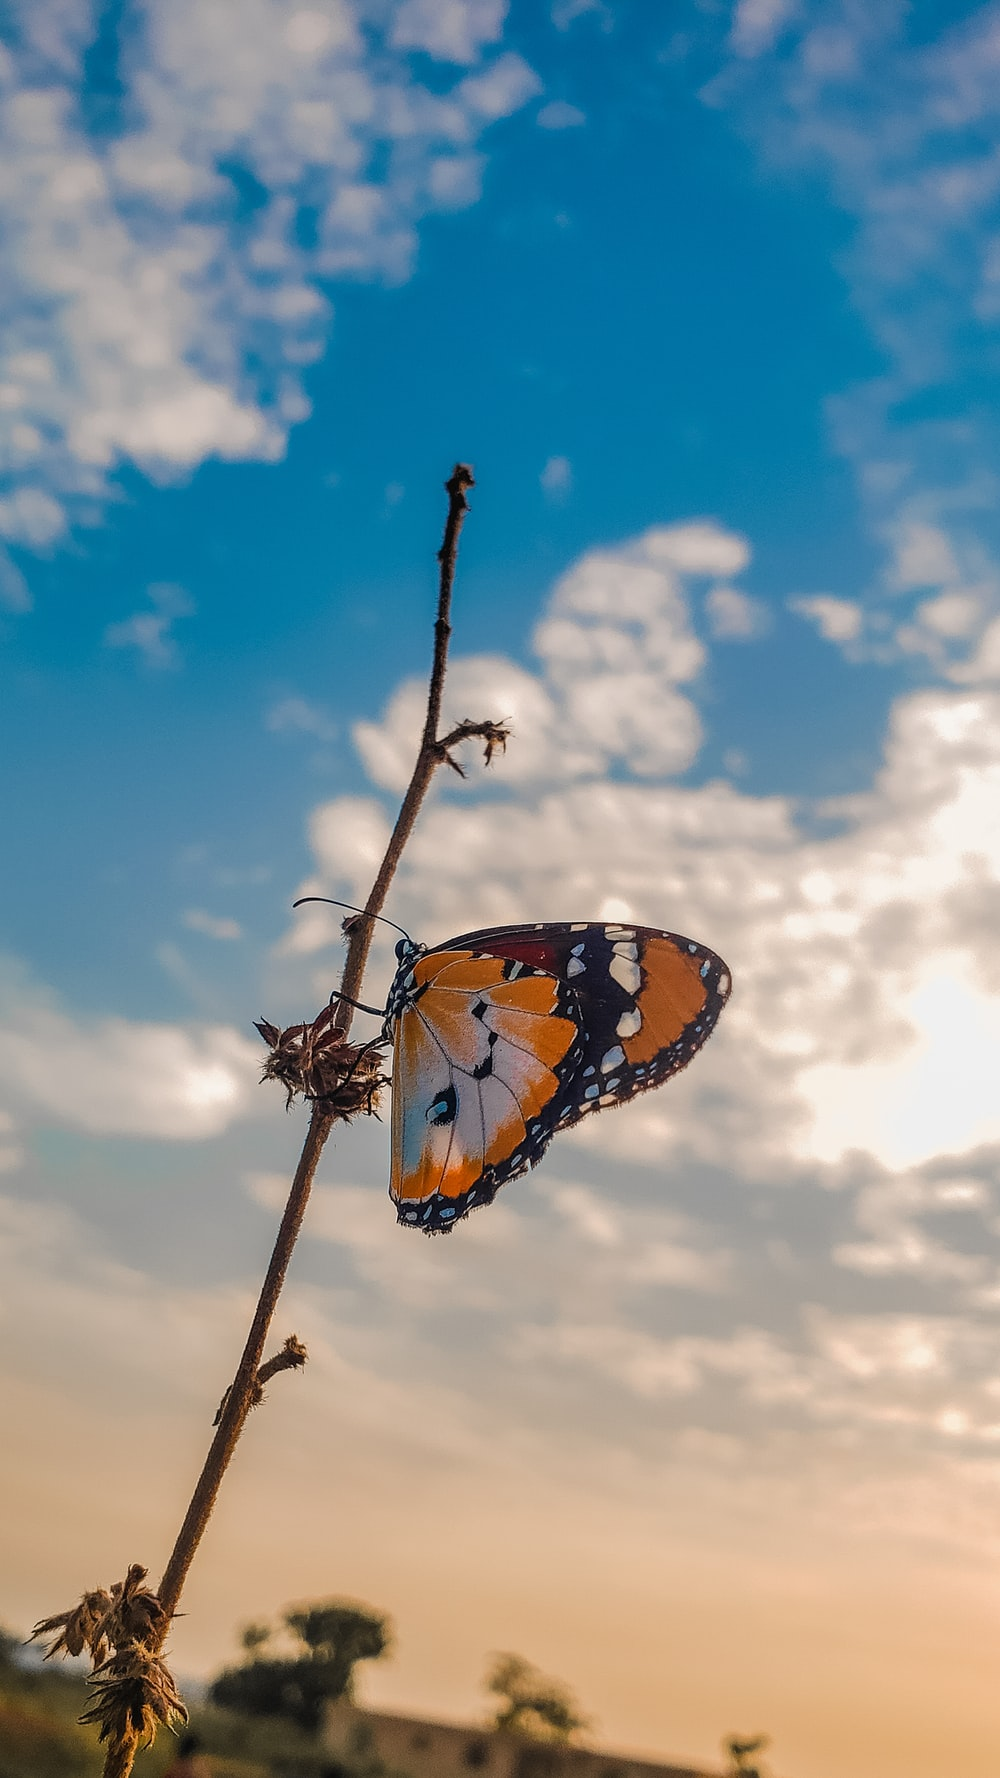 brown and black butterfly on brown stem under blue and white cloudy sky during daytime